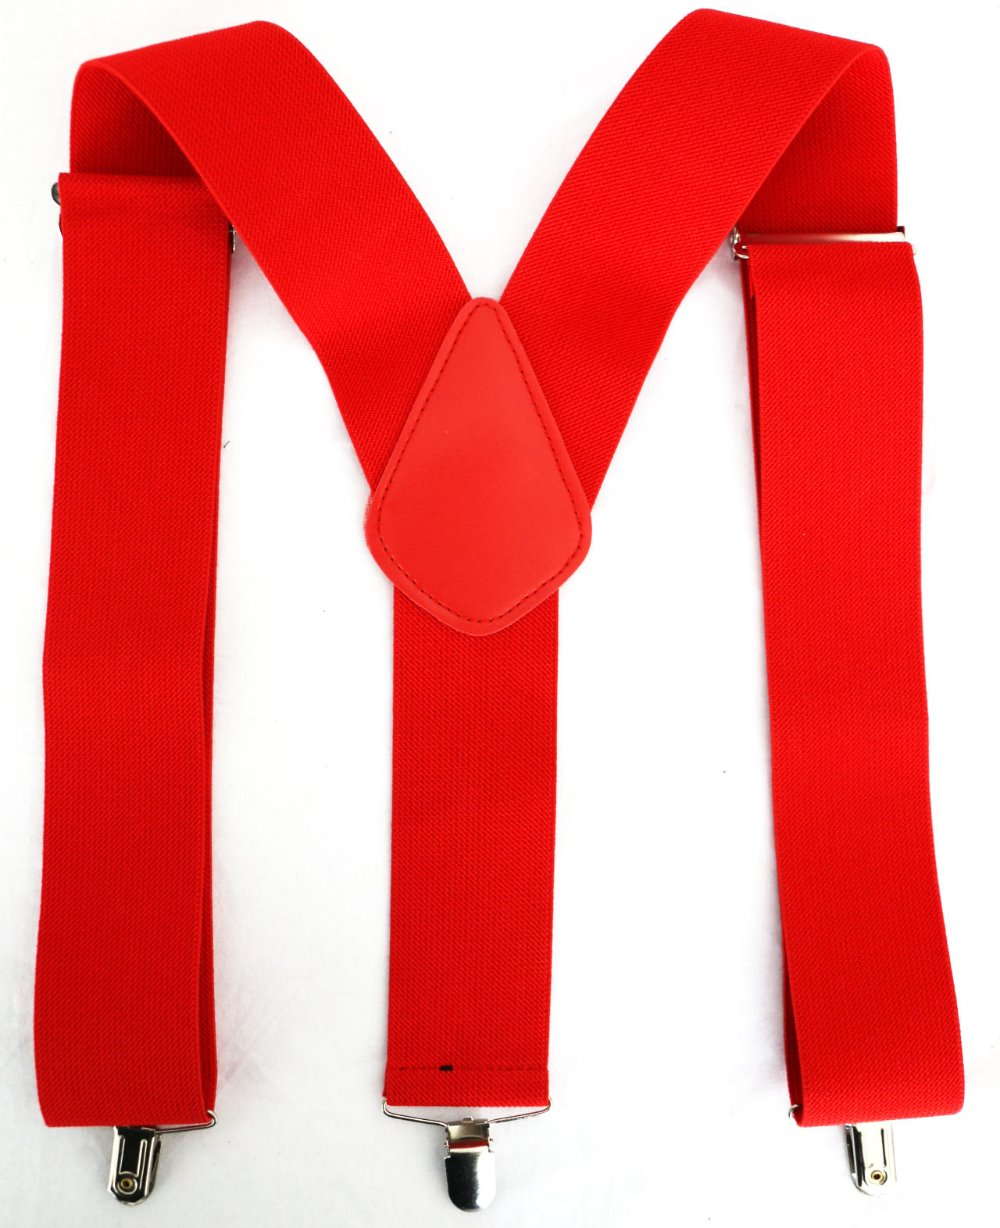 11.11 Suspenders Mens New 2 Inch 50mm Wide Black Red Color  Y-Back Clip-On Braces Suspenders For Mens Male